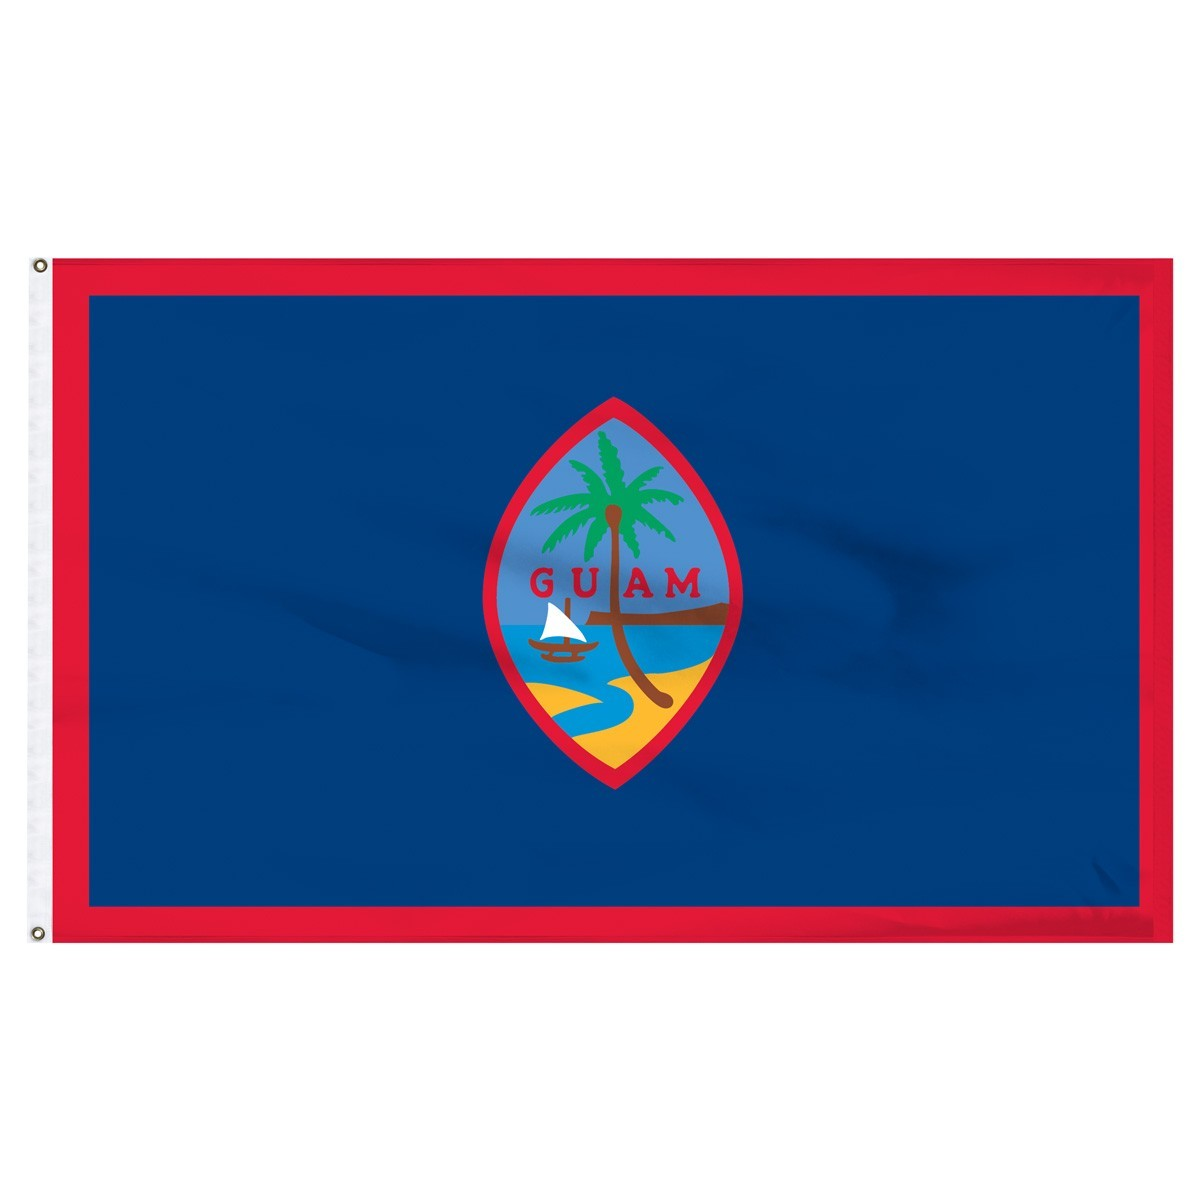 Guam US State flags for sale 1-800 flags